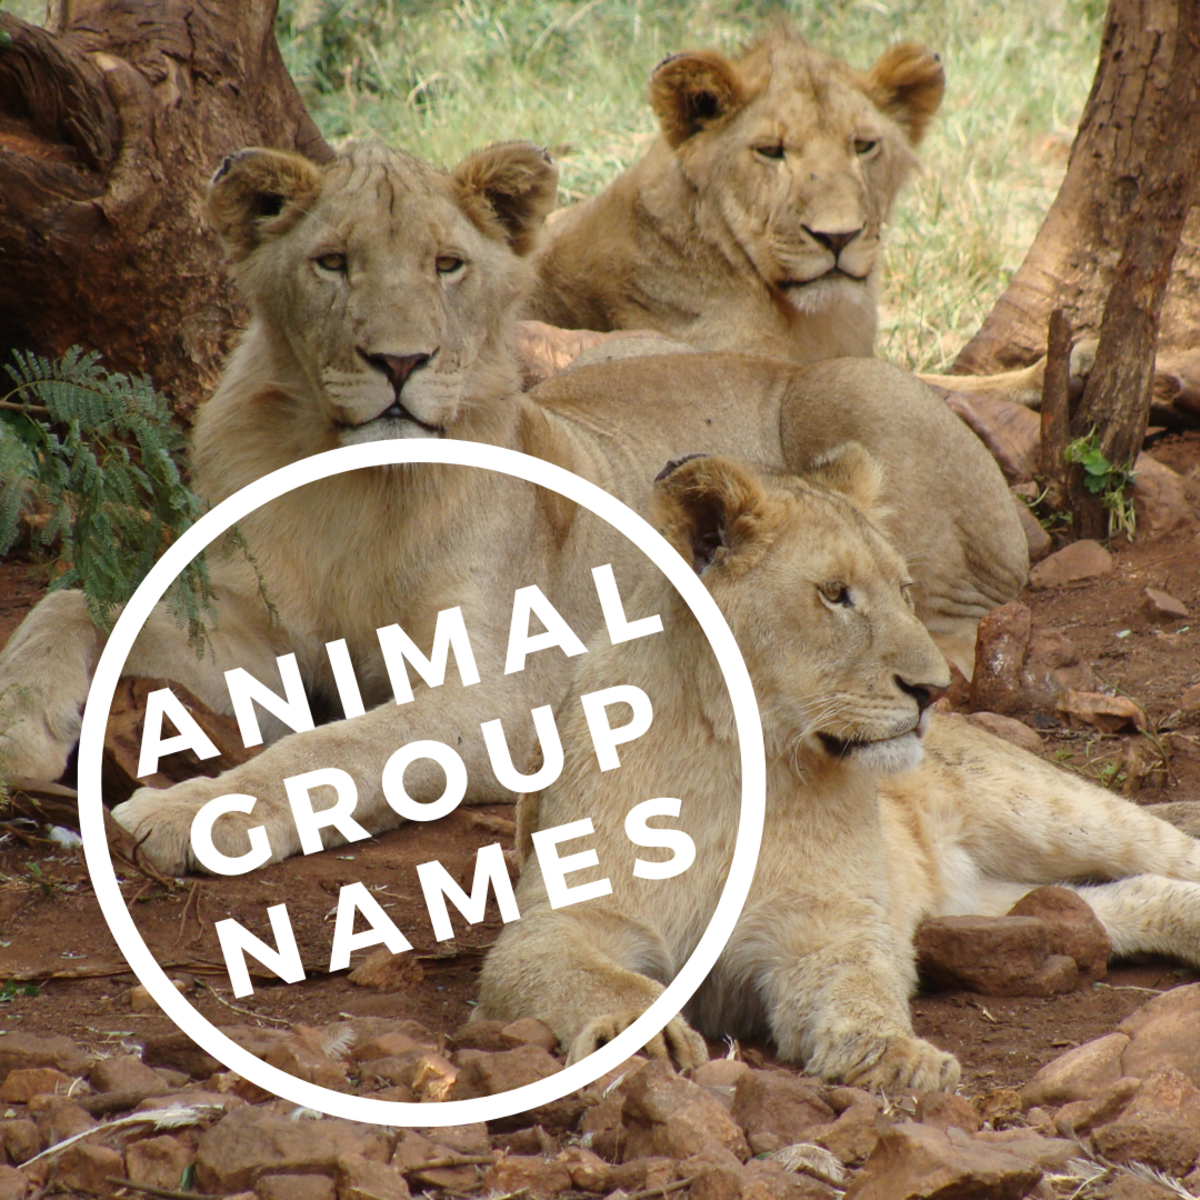 Names for Groups of Animals and Insects